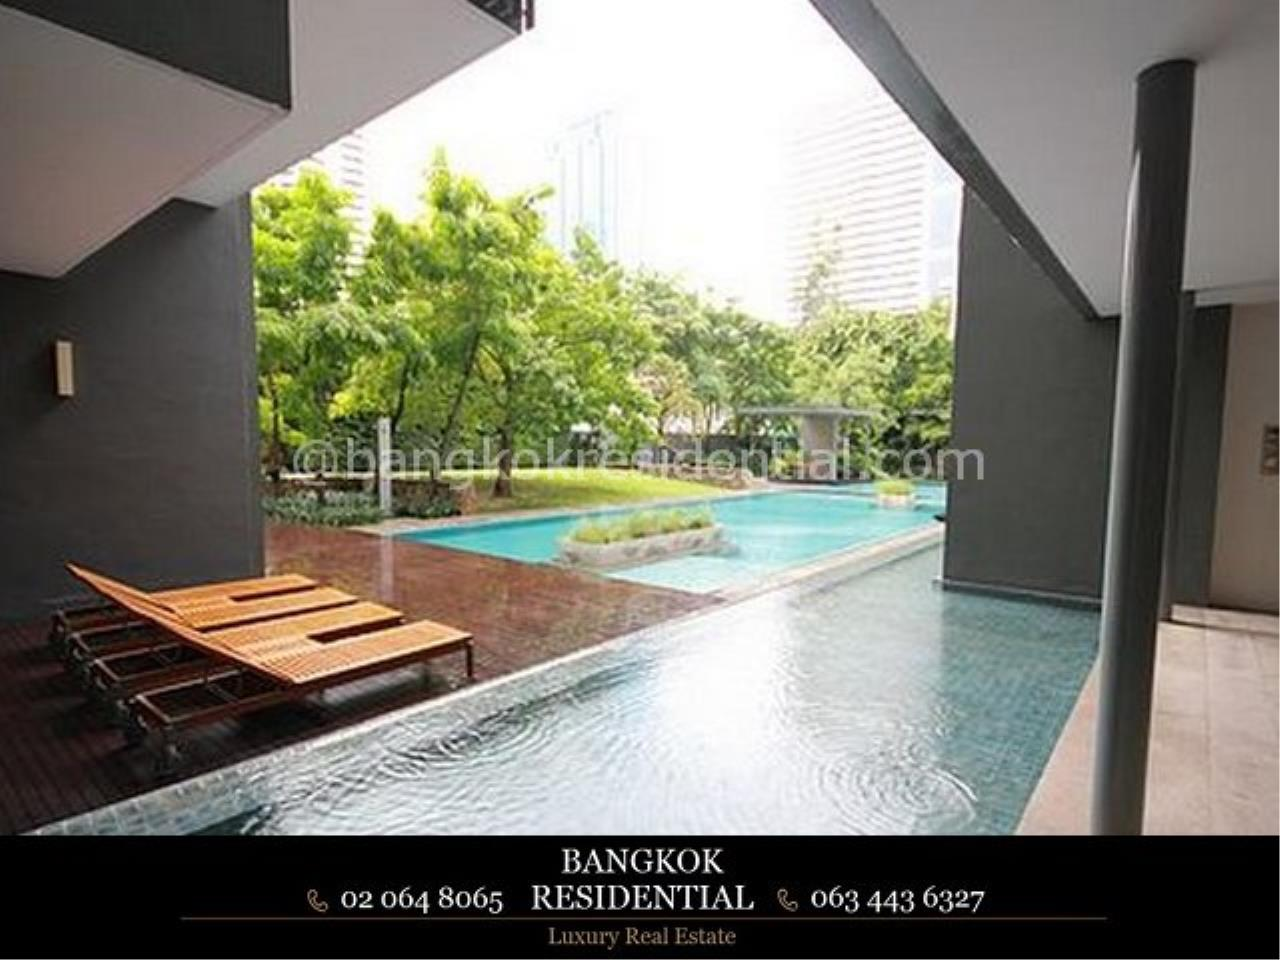 Bangkok Residential Agency's 2BR Domus For Sale (BR3439CD) 2